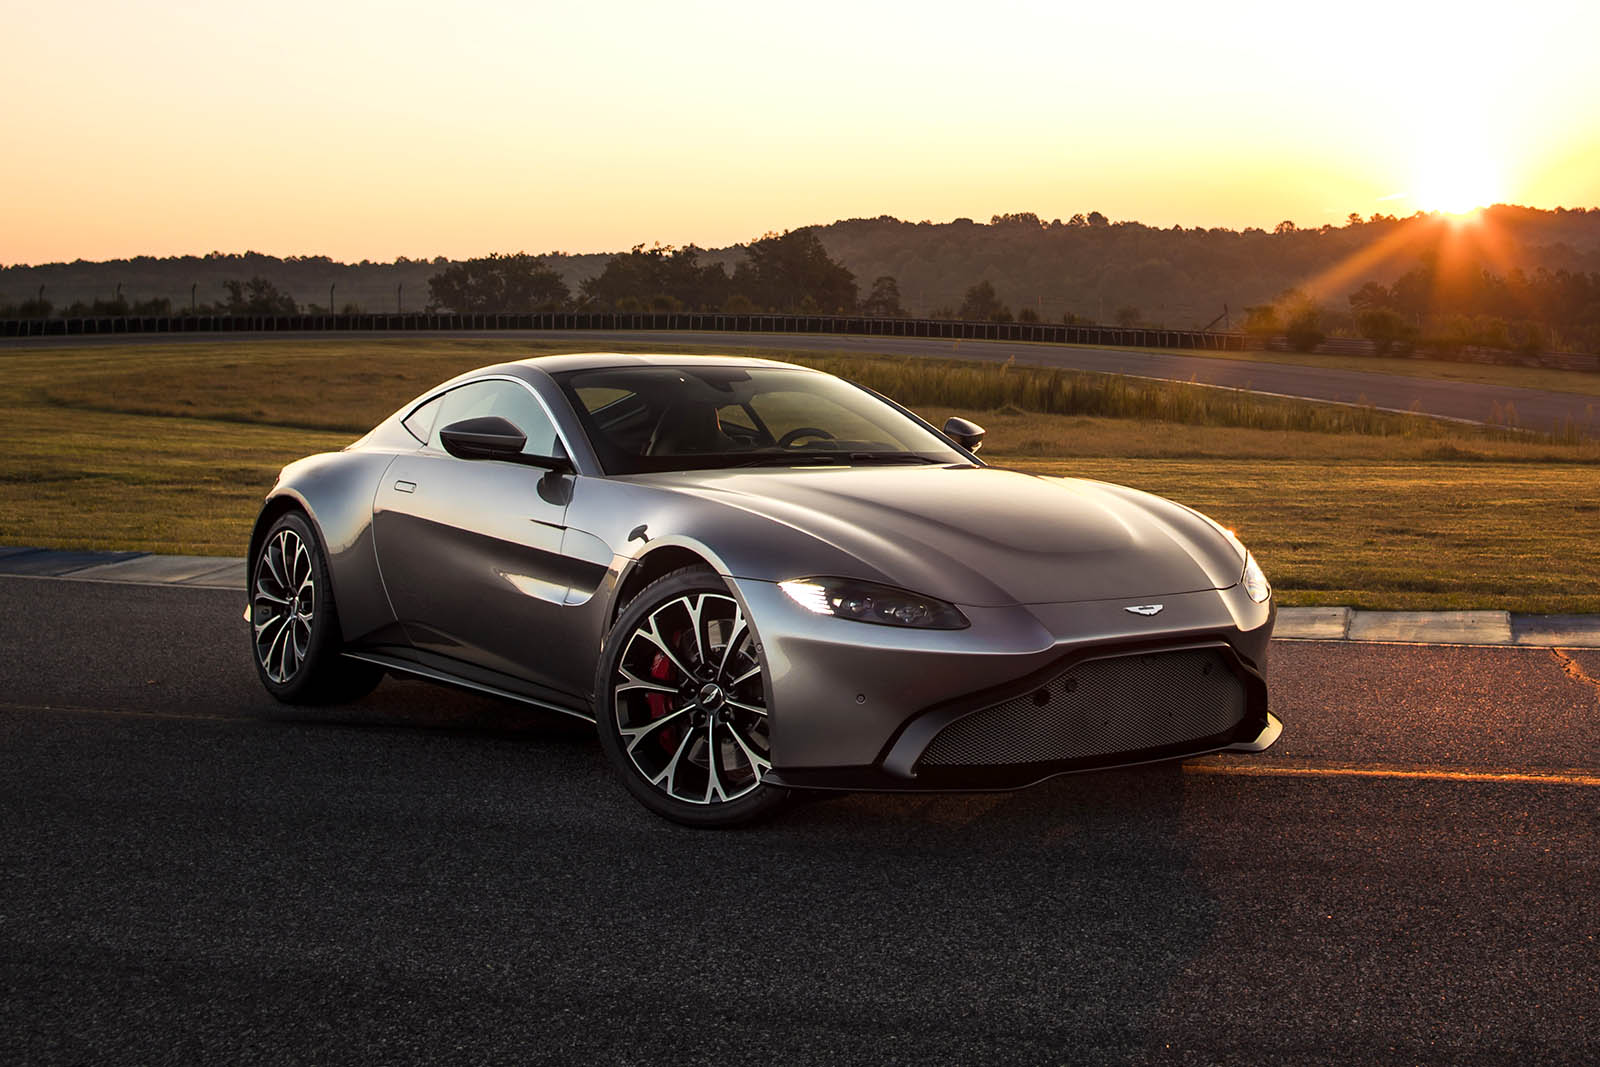 la nouvelle aston martin vantage se r v le enfin french driver. Black Bedroom Furniture Sets. Home Design Ideas